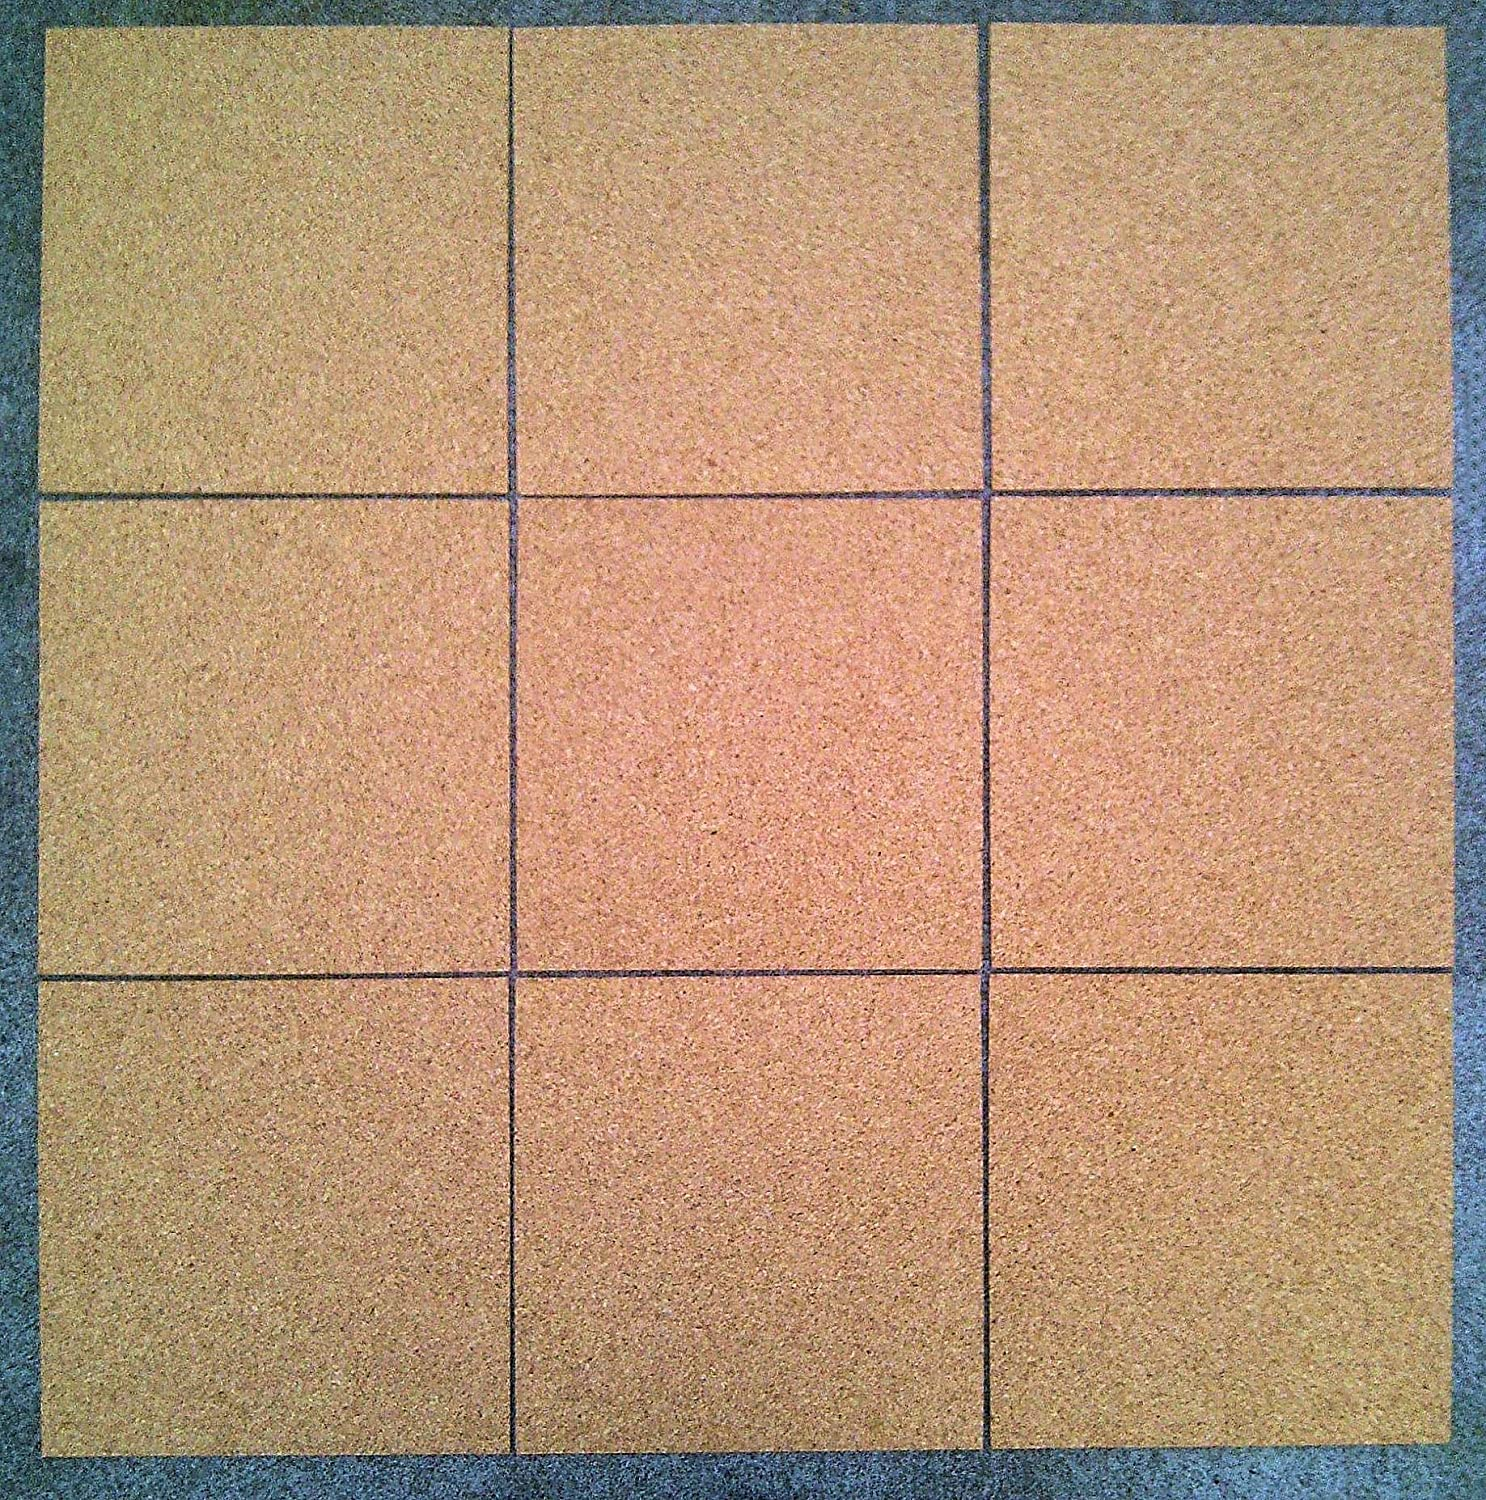 cork floor tiles uk self adhesive gurus floor. Black Bedroom Furniture Sets. Home Design Ideas